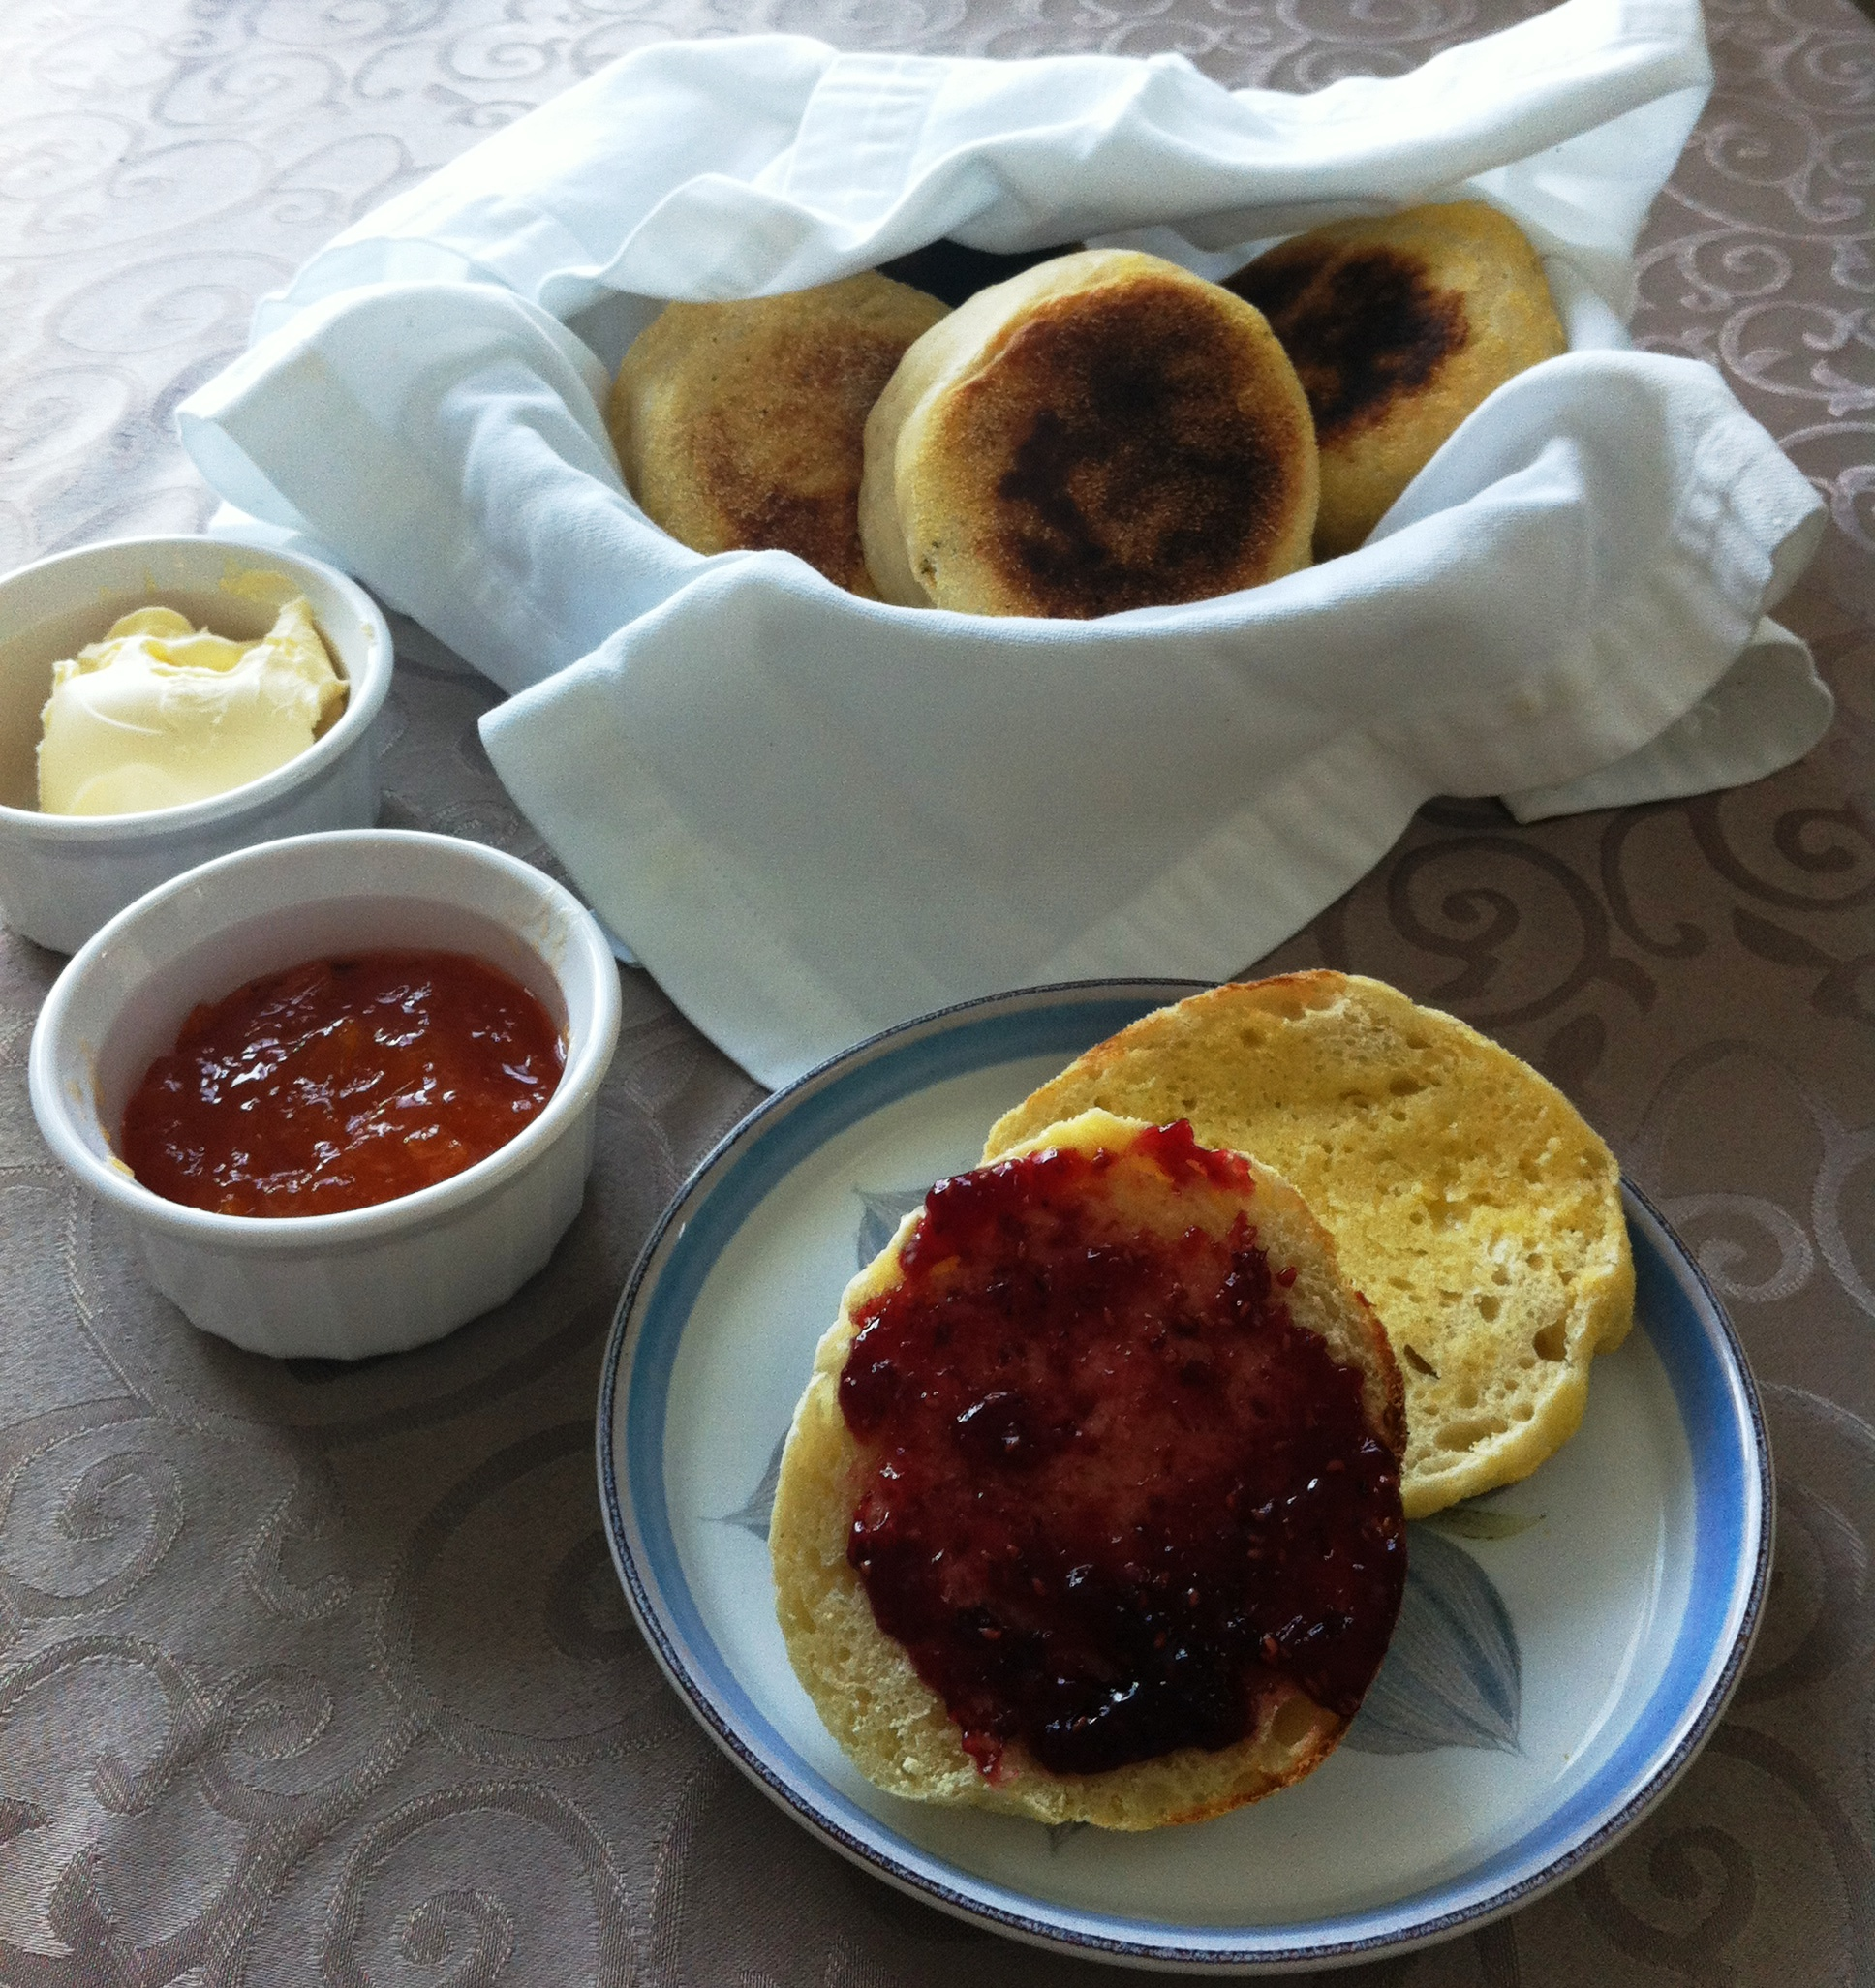 English muffins: americanized crumpet